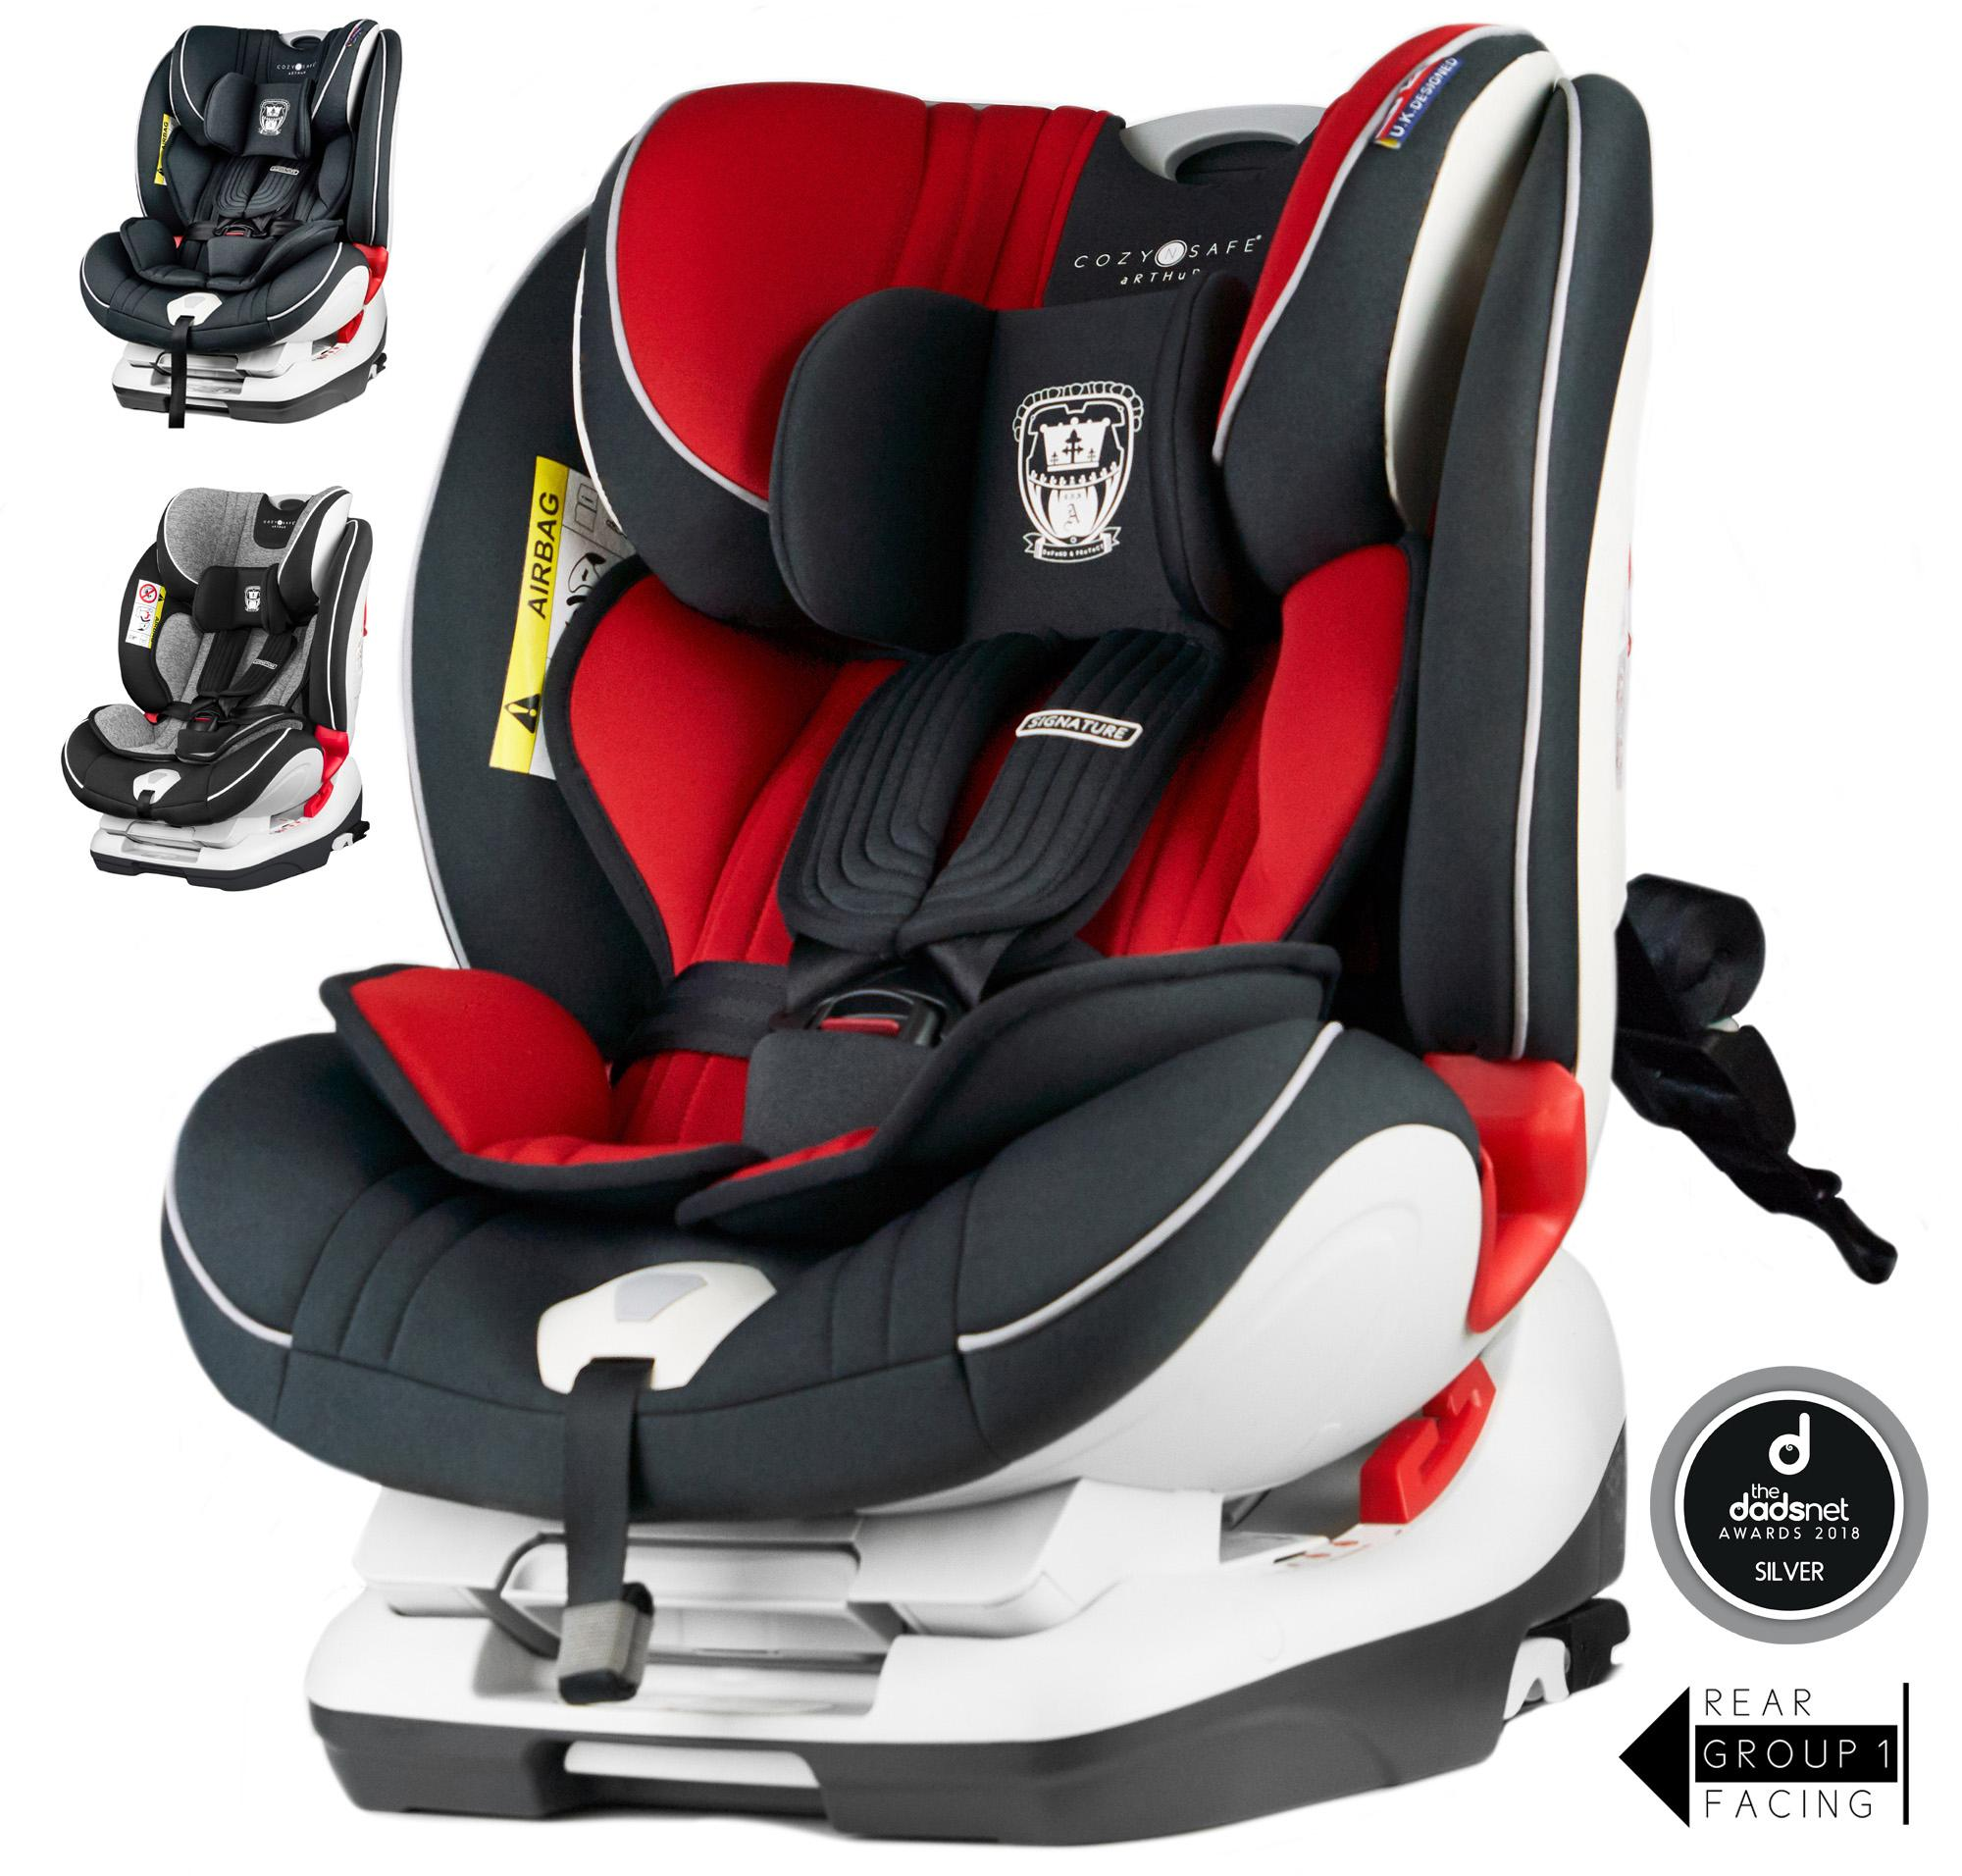 Cozy N Safe Arthur Group 0+/1/2/3 Child Car Seat - Red